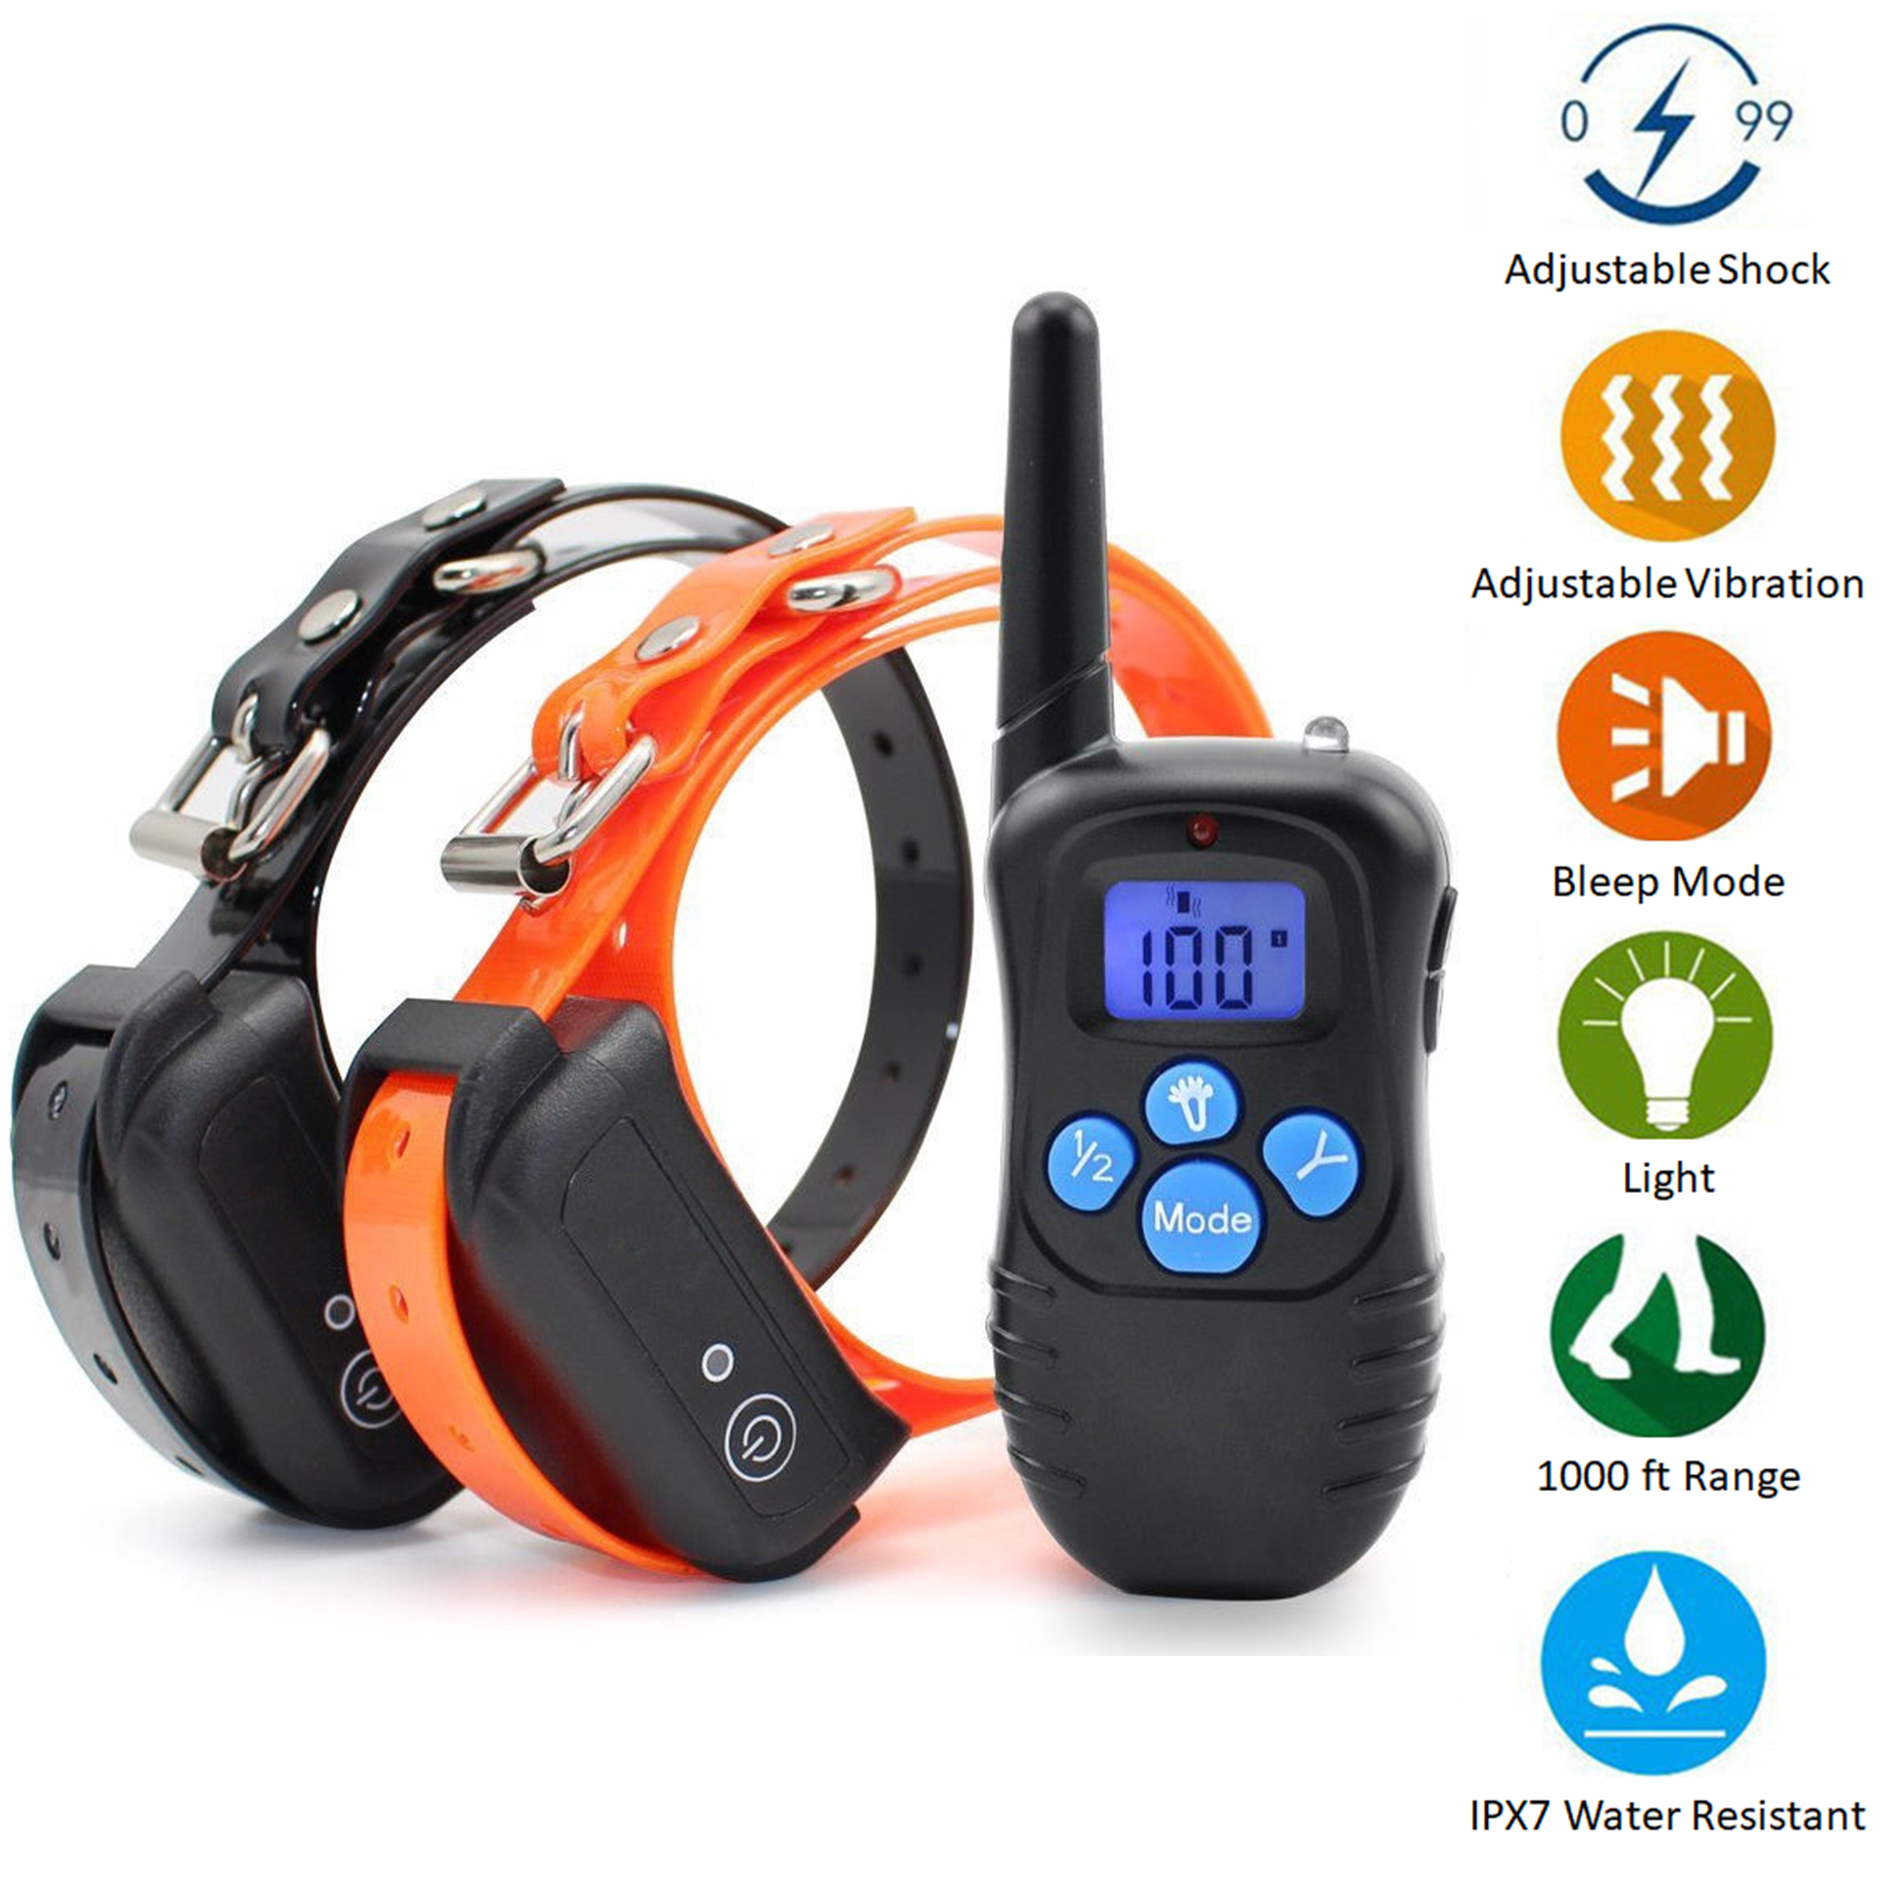 Best dog training collar, charge both devices simultaneously, dog training device stop barking dogs. Pet trainer